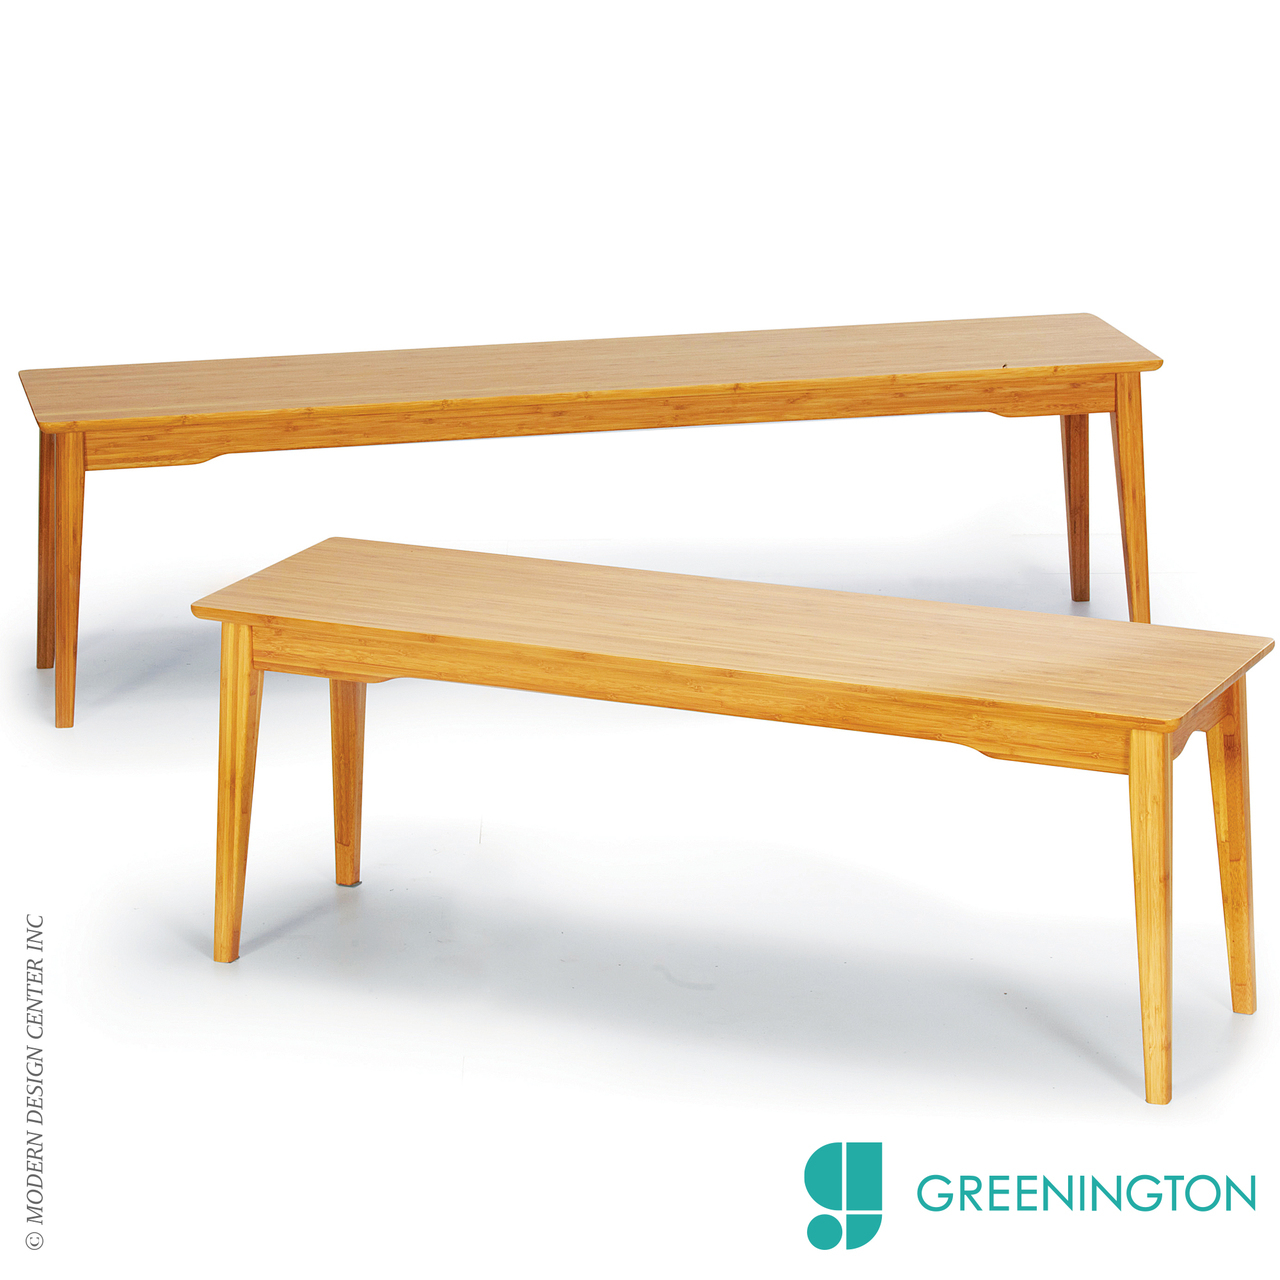 Currant Short Bench Greenington Metropolitandecor